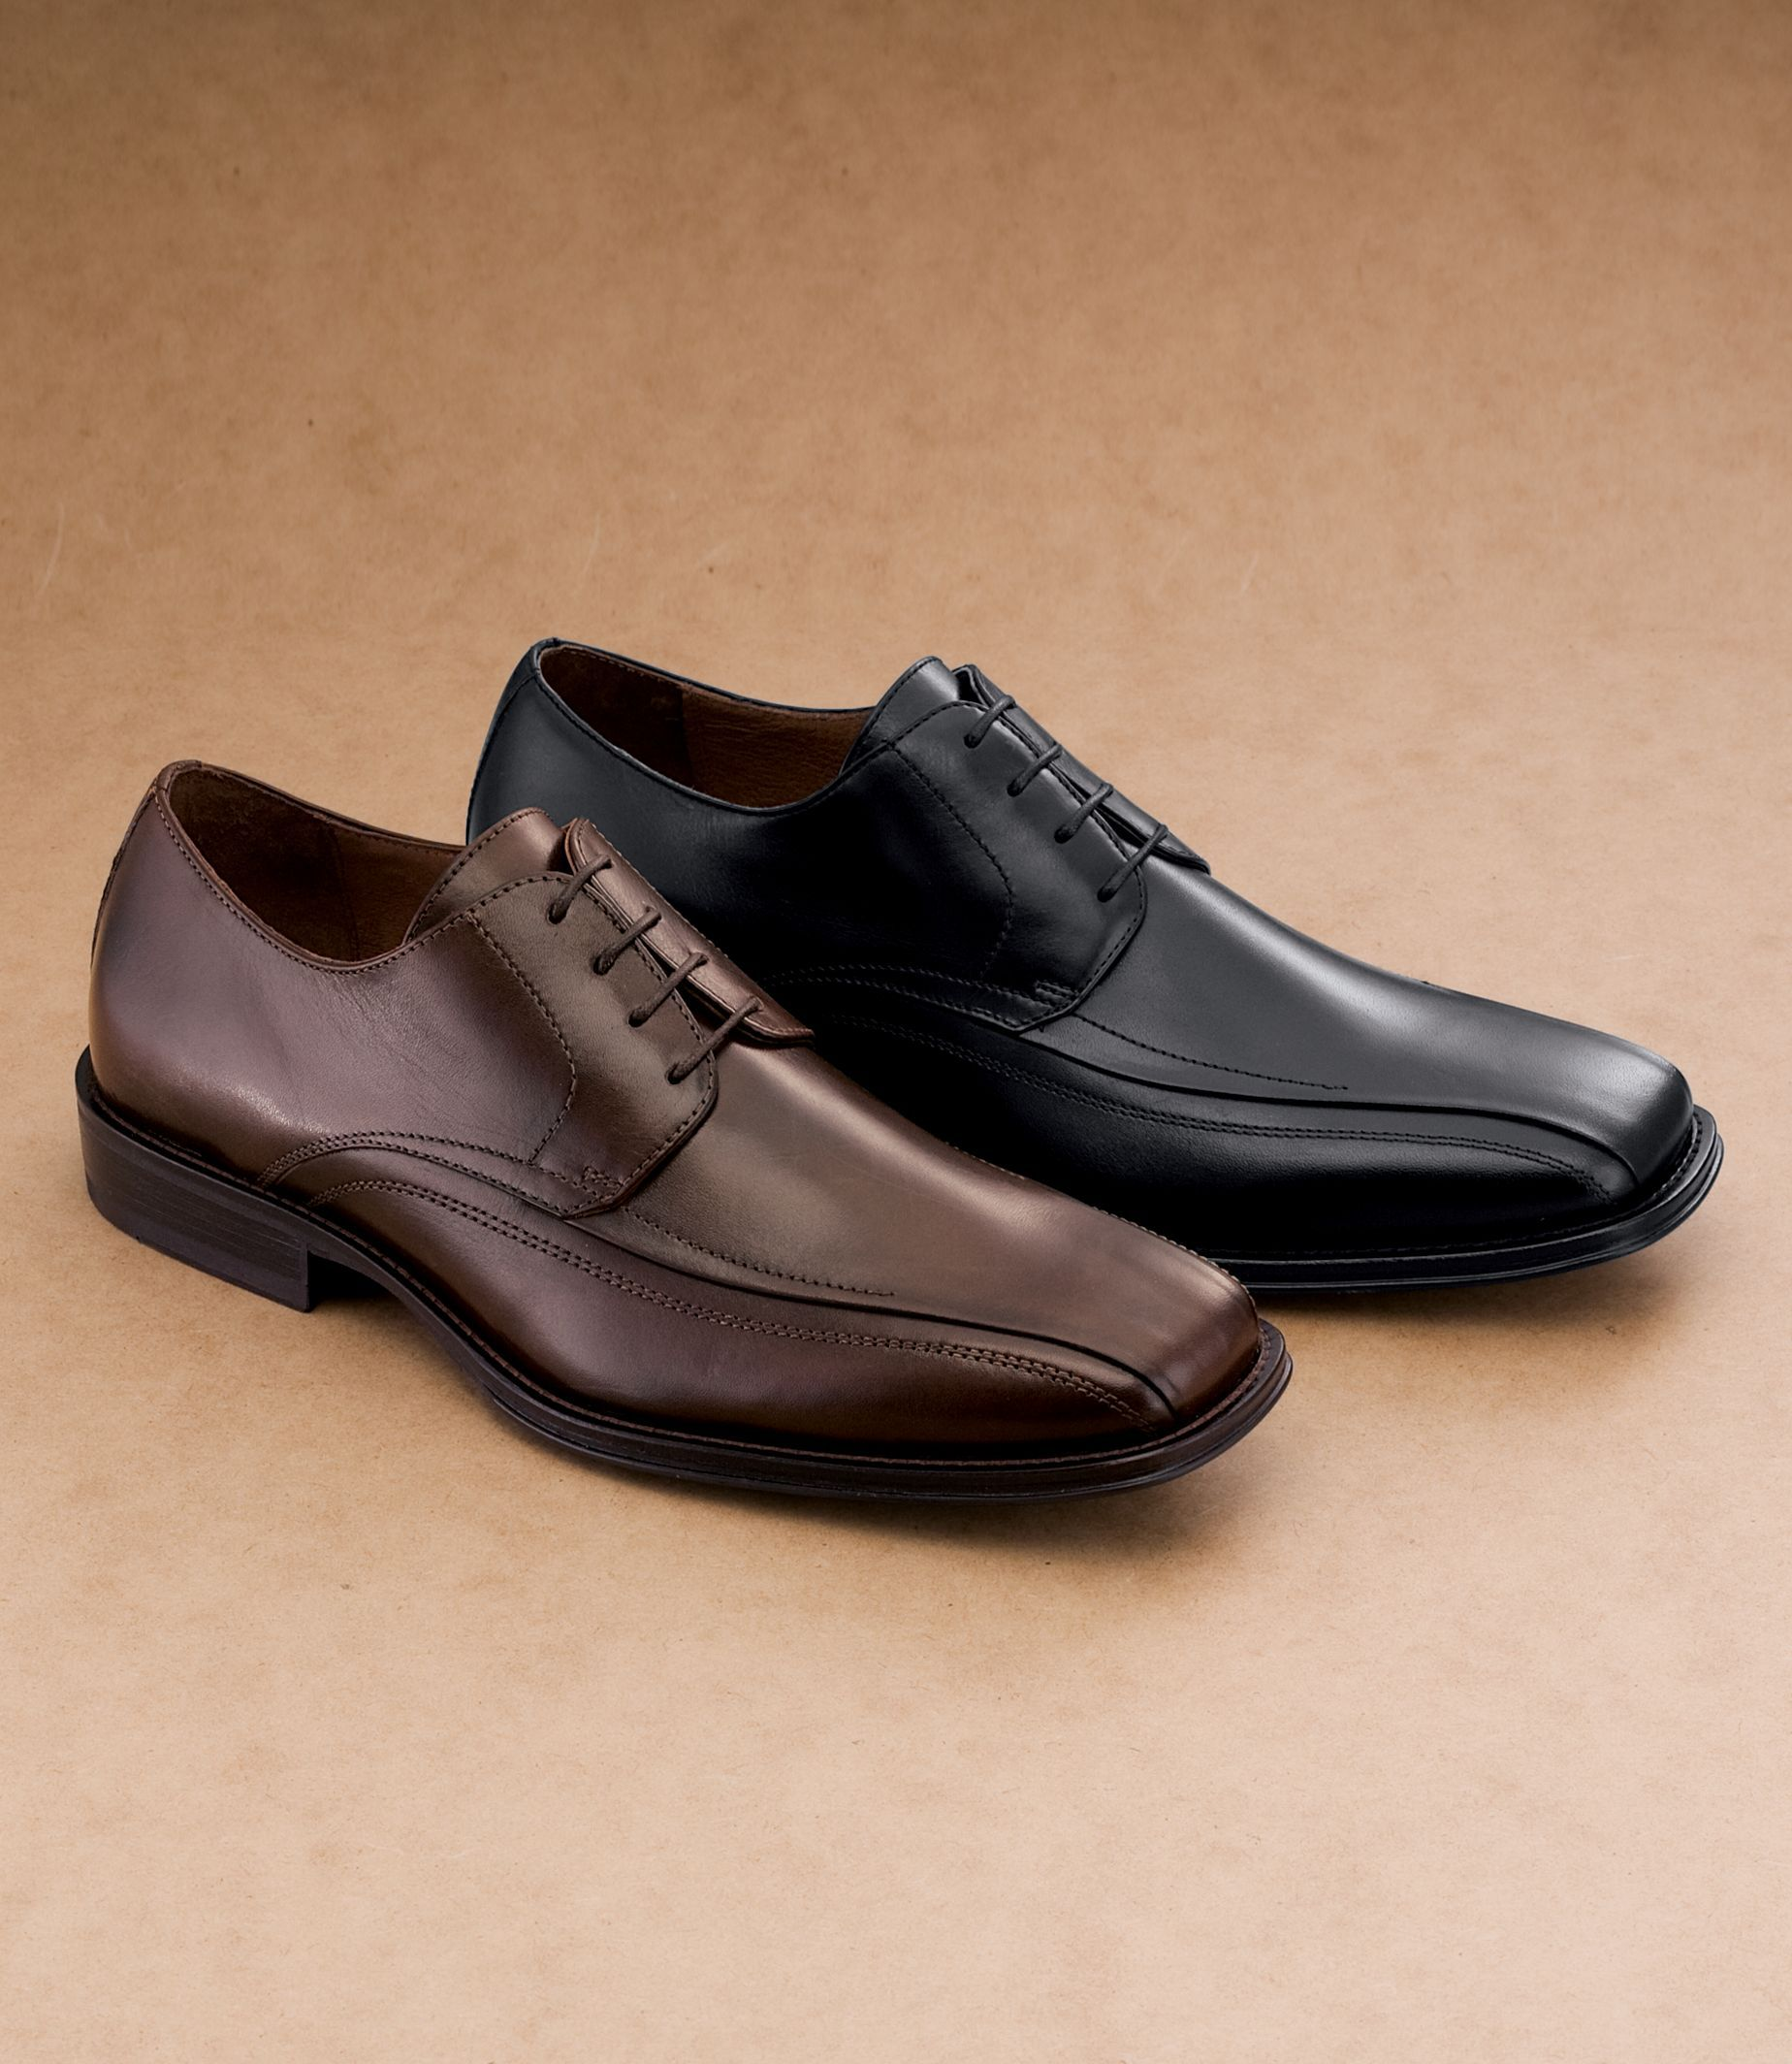 f5a259a0387 The Harding Panel Shoe from Johnson   Murphy